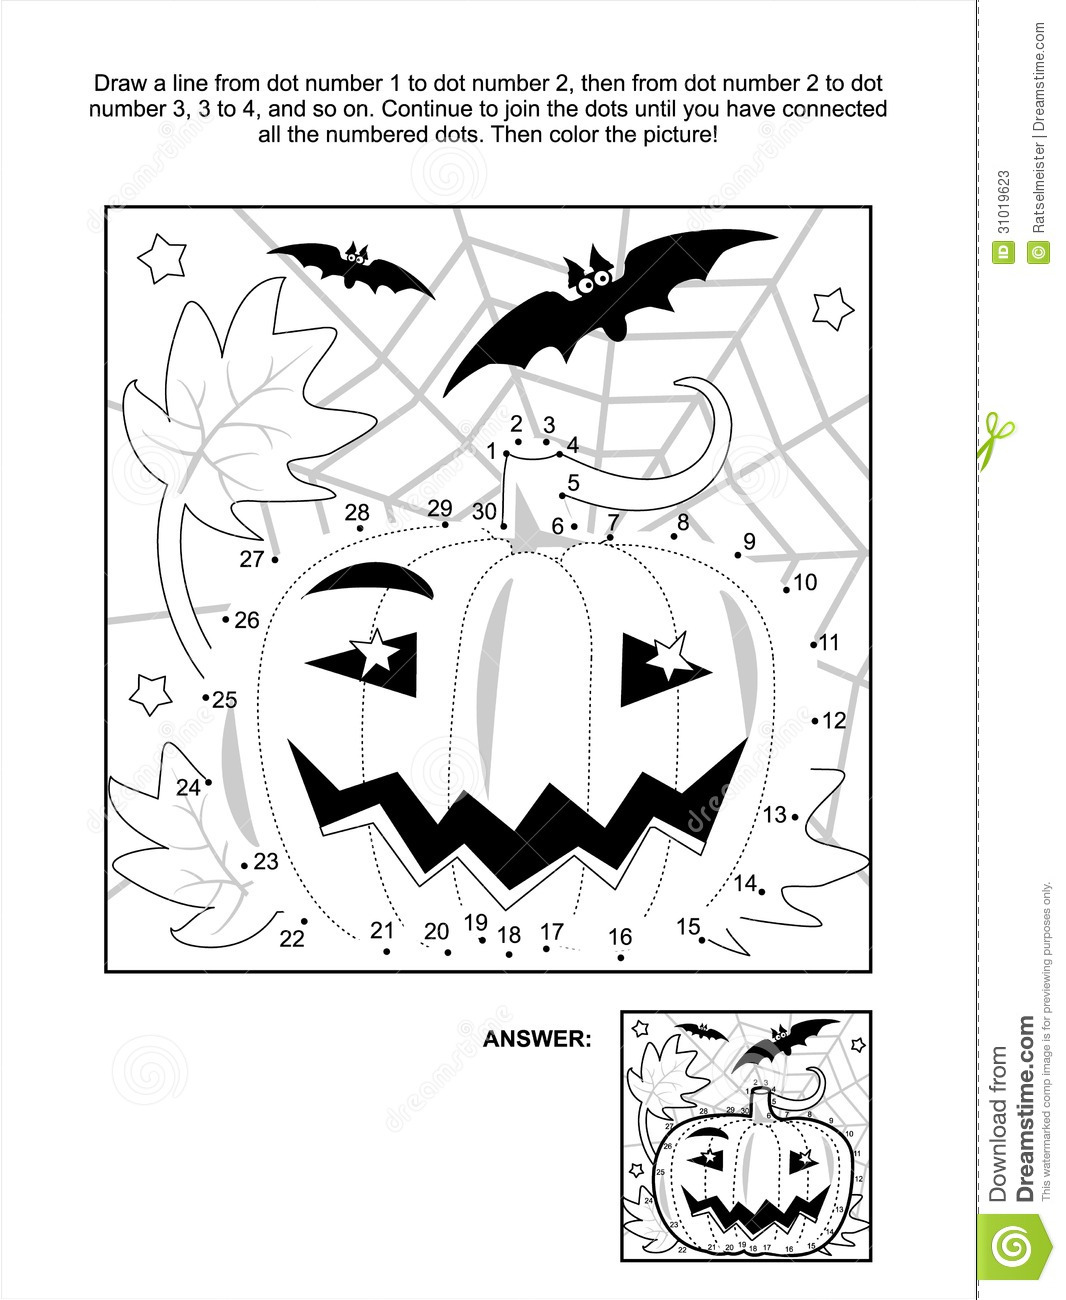 Free Coloring Pages Of Extreme Dot To Dot Puzzle